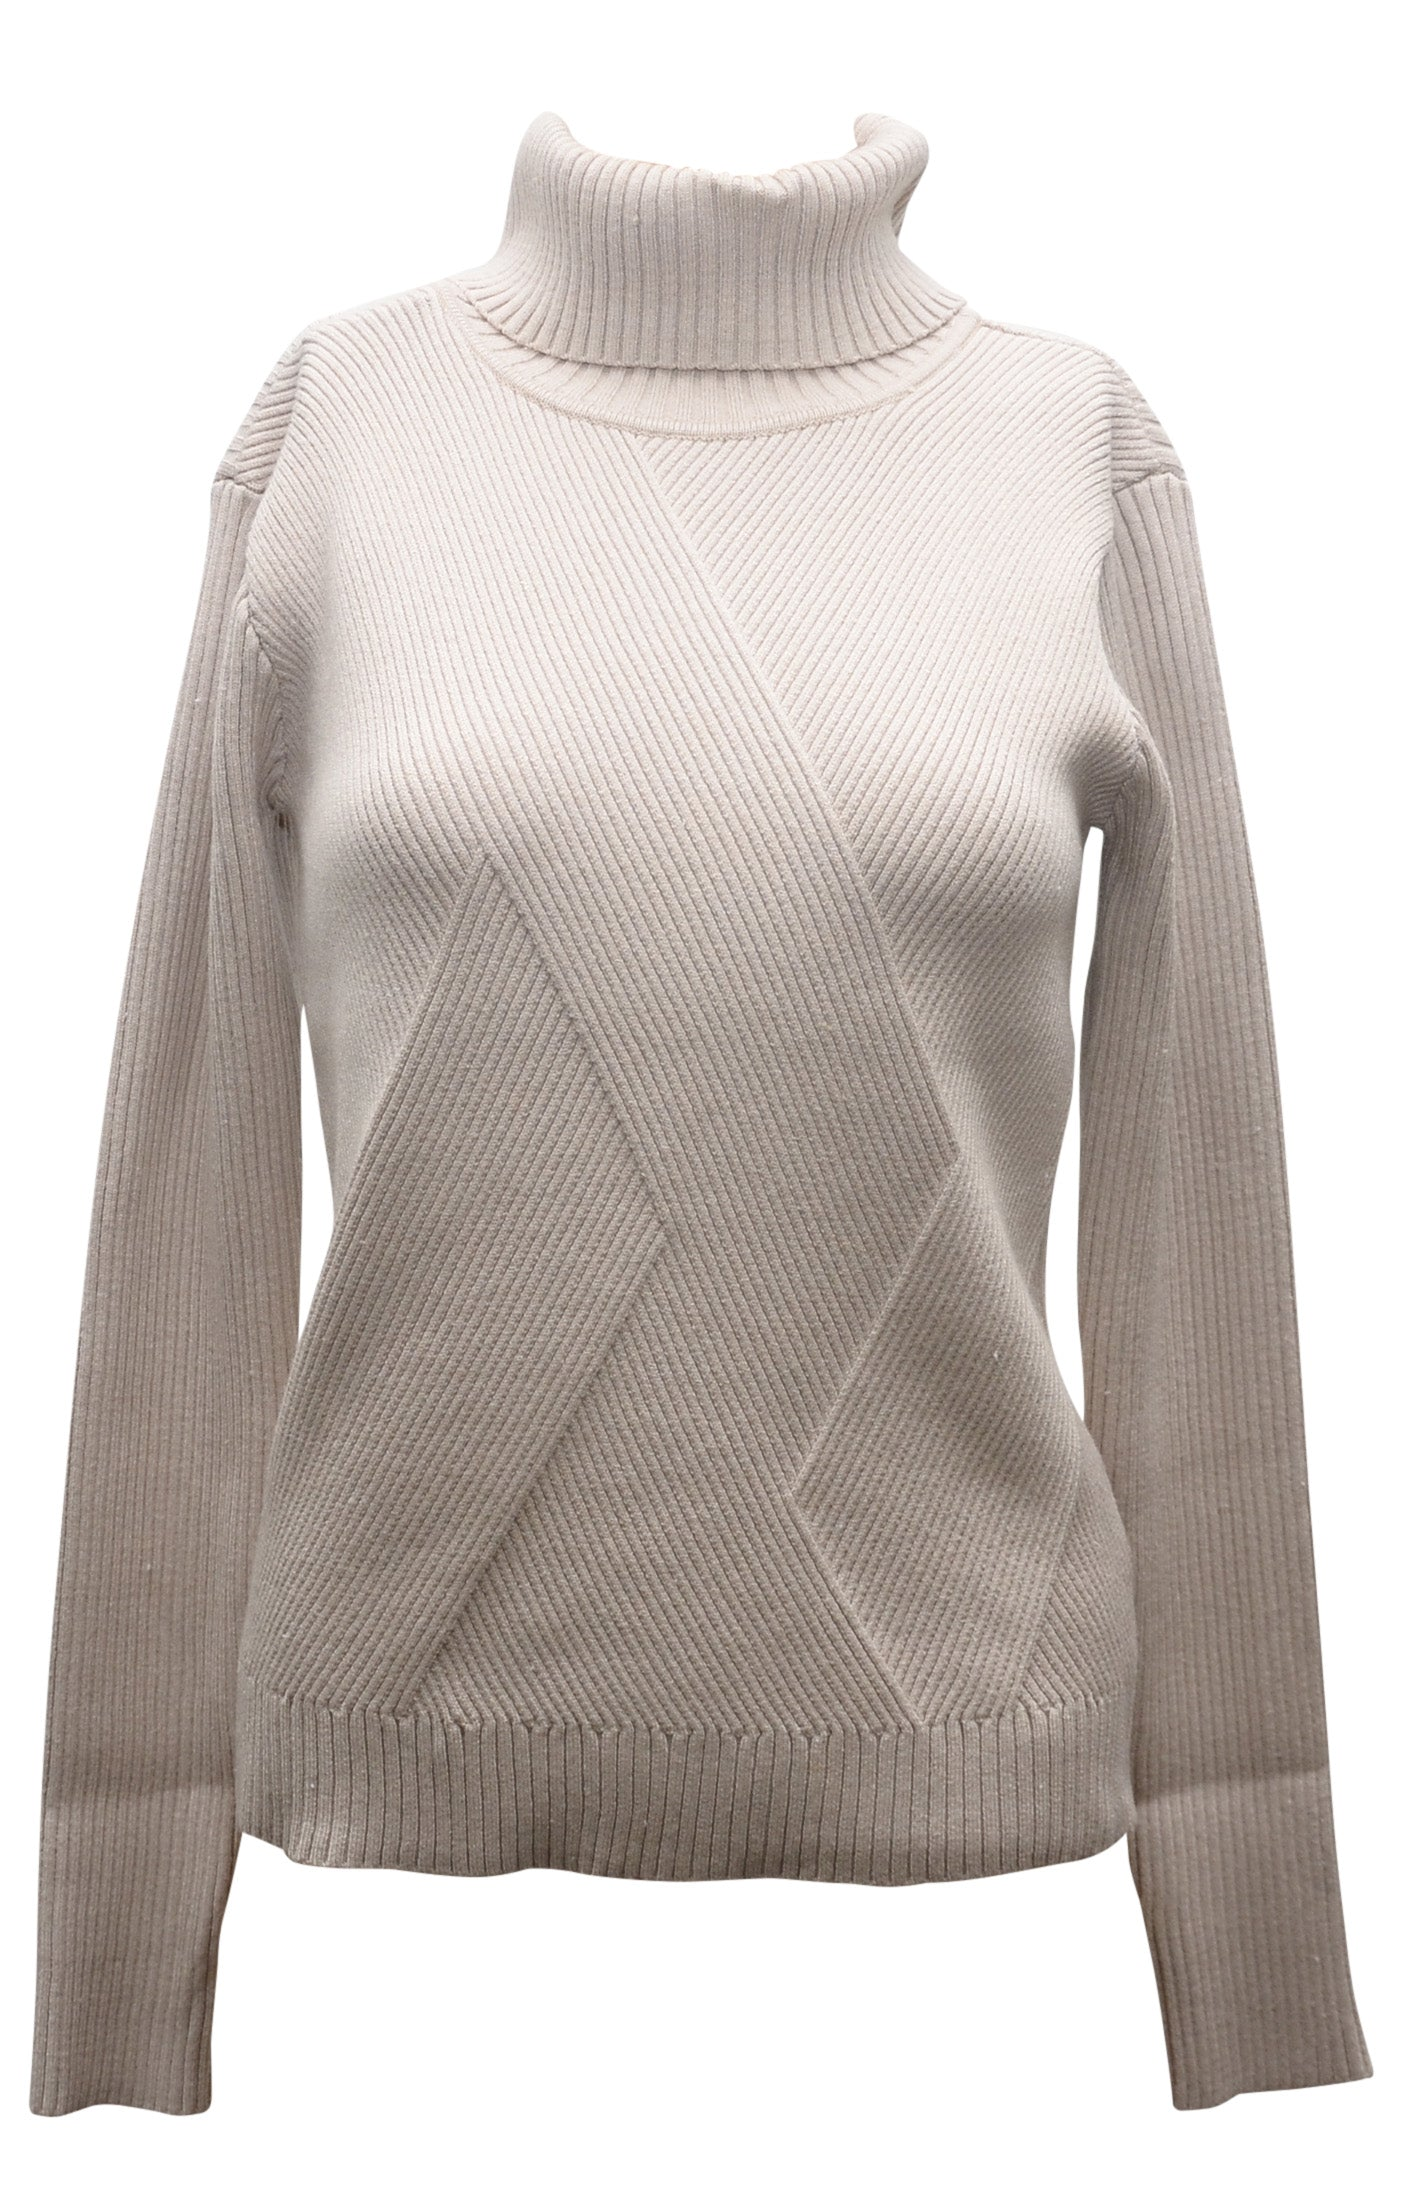 Beige Turtleneck by JOA